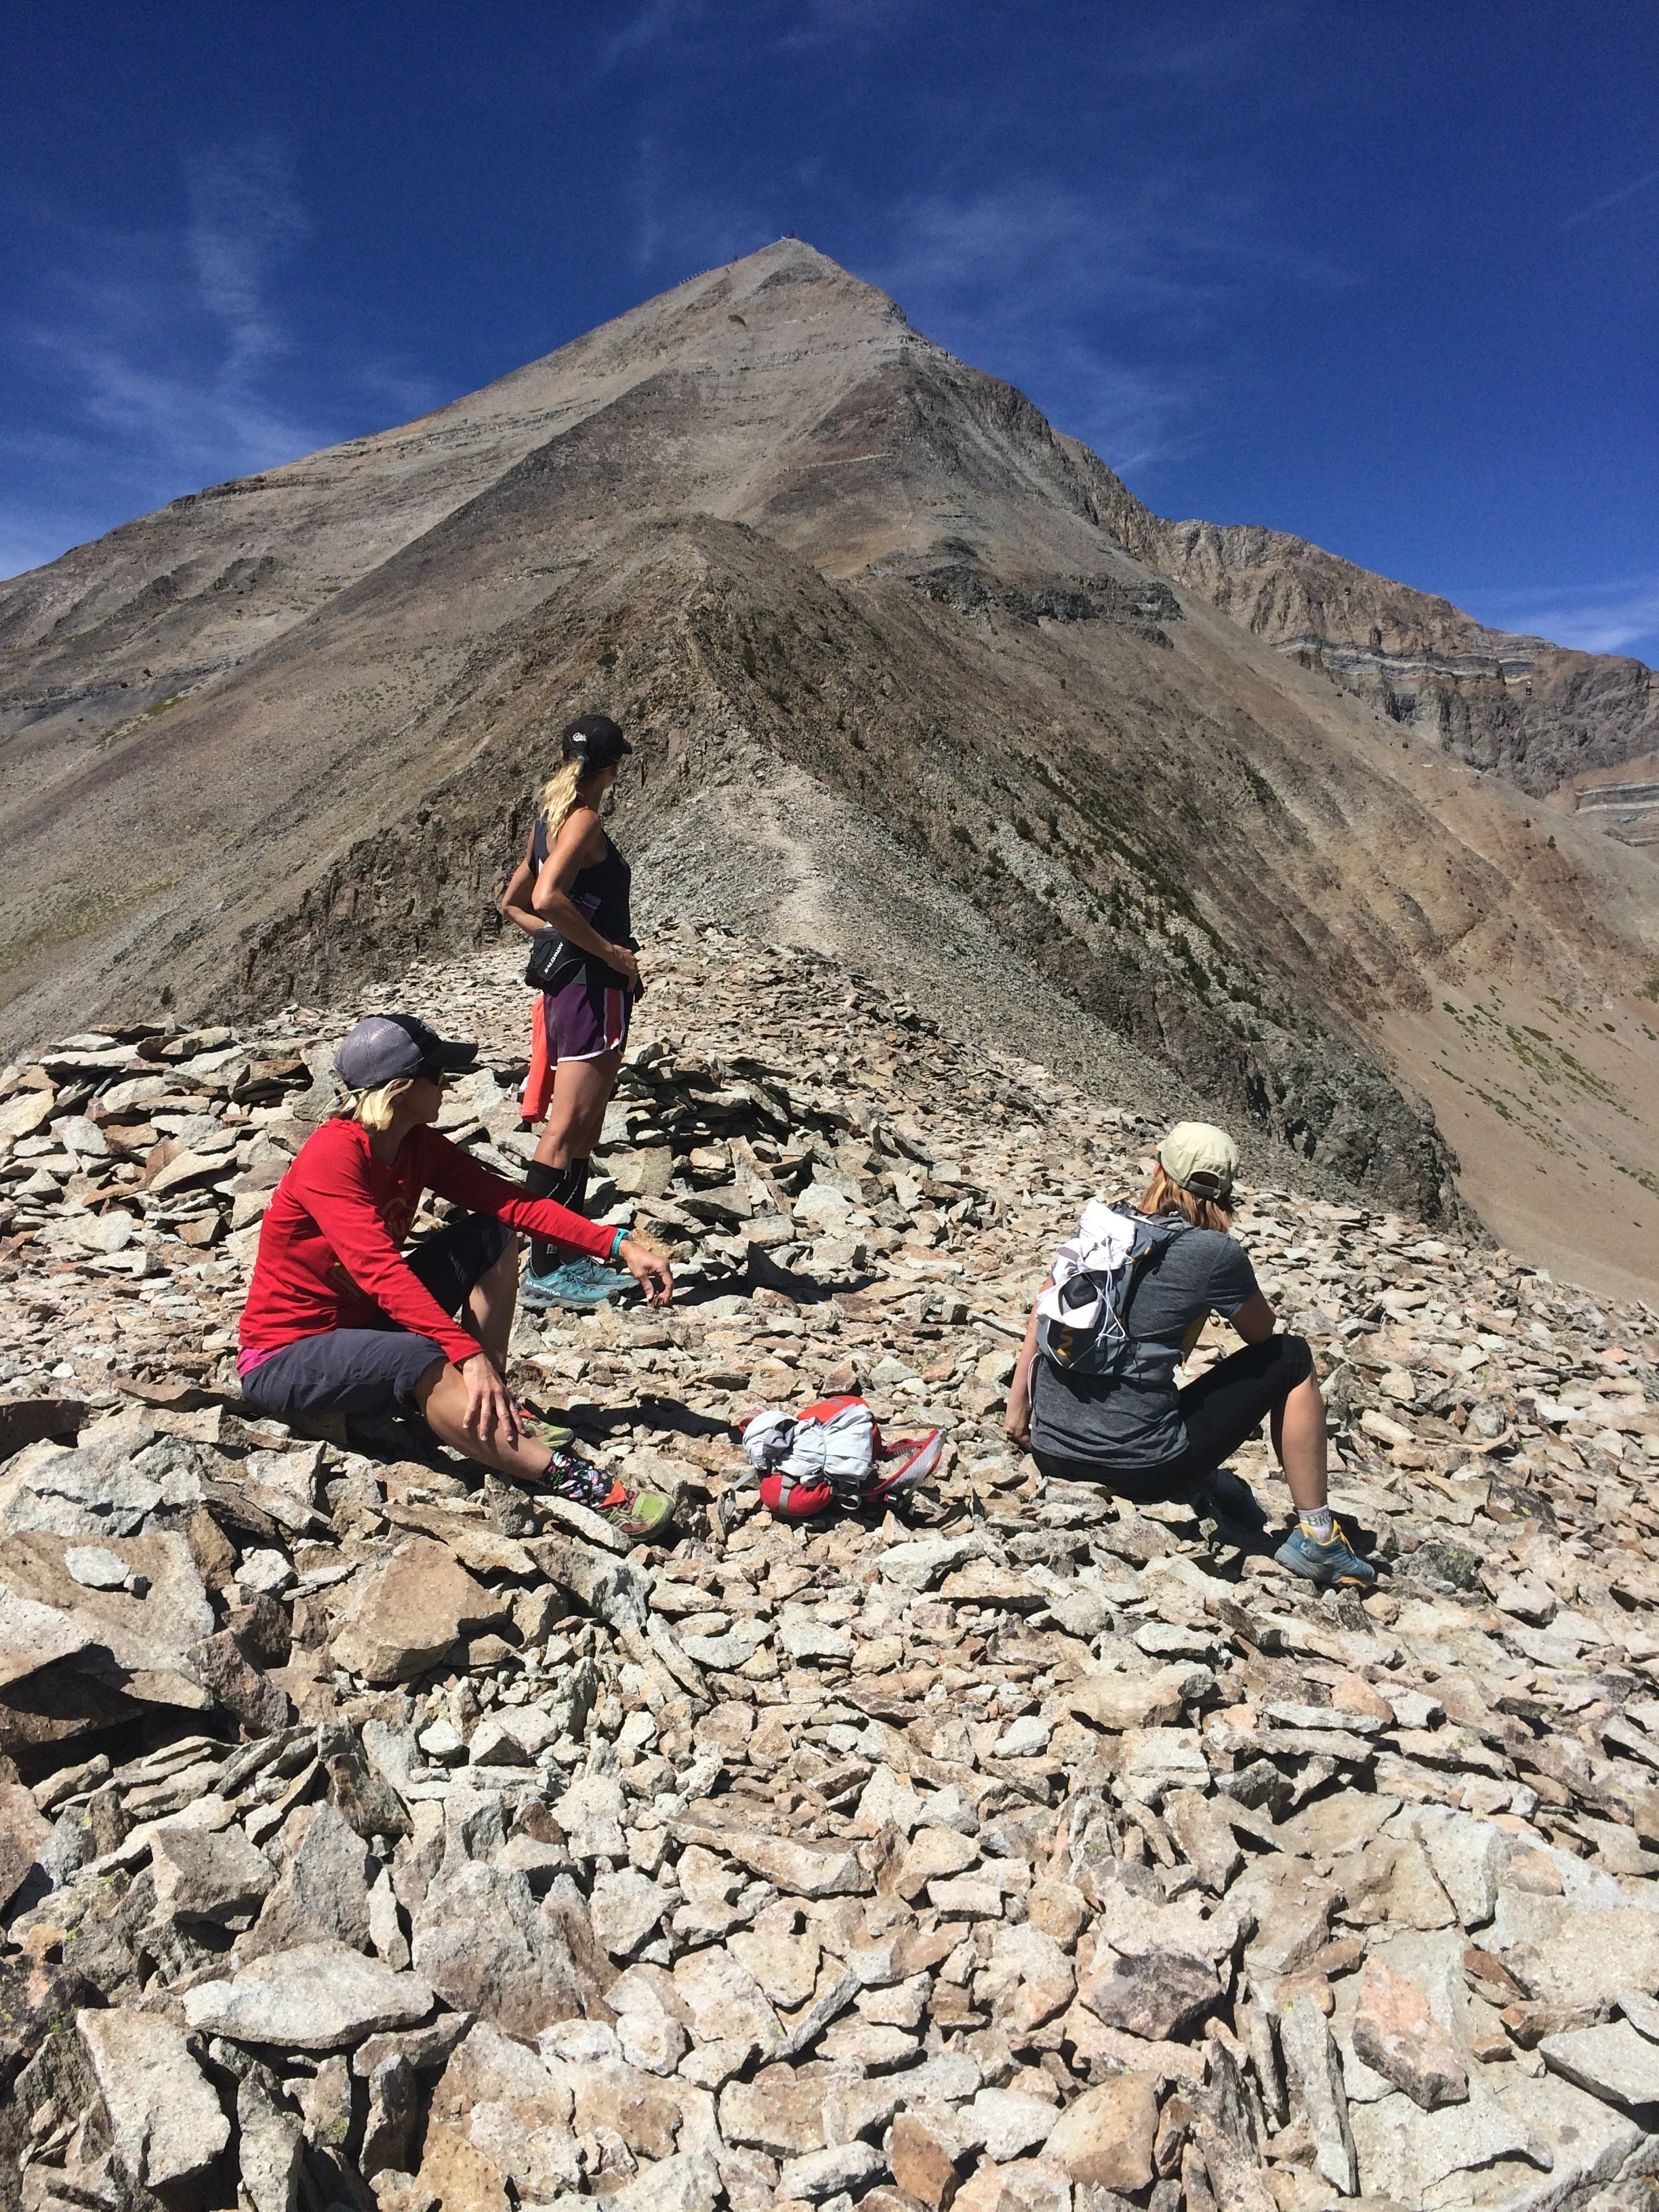 Taking a break before the ascent to Lone Peak Big Sky